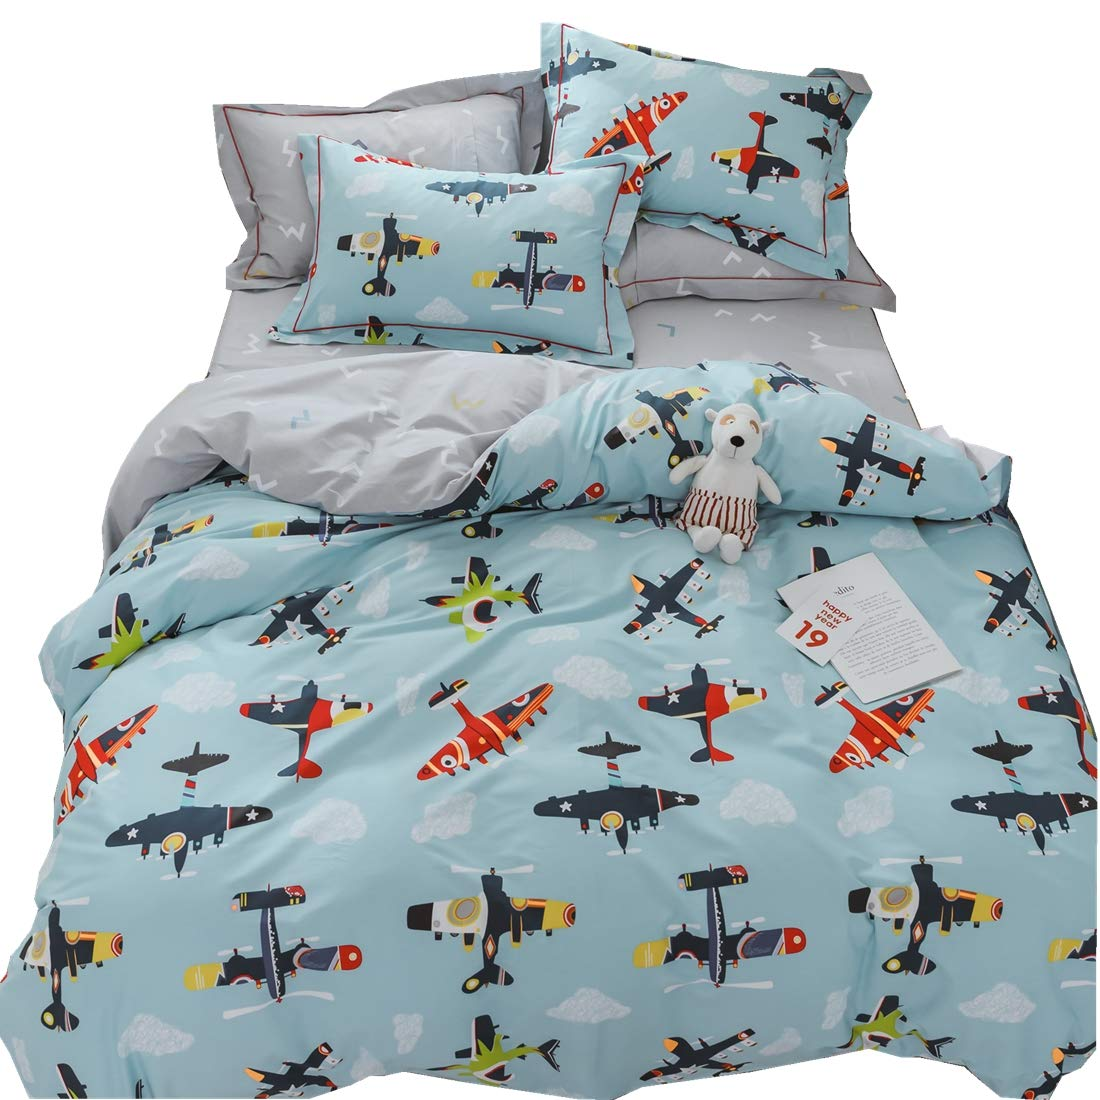 LAYENJOY Airplane Cartoon Duvet Cover Set Twin Size Flying Sky Clouds 100% Cotton Bedding Set for Kids Teens Boys Girls Reversible Blue Gray Comforter Cover, No Comforter